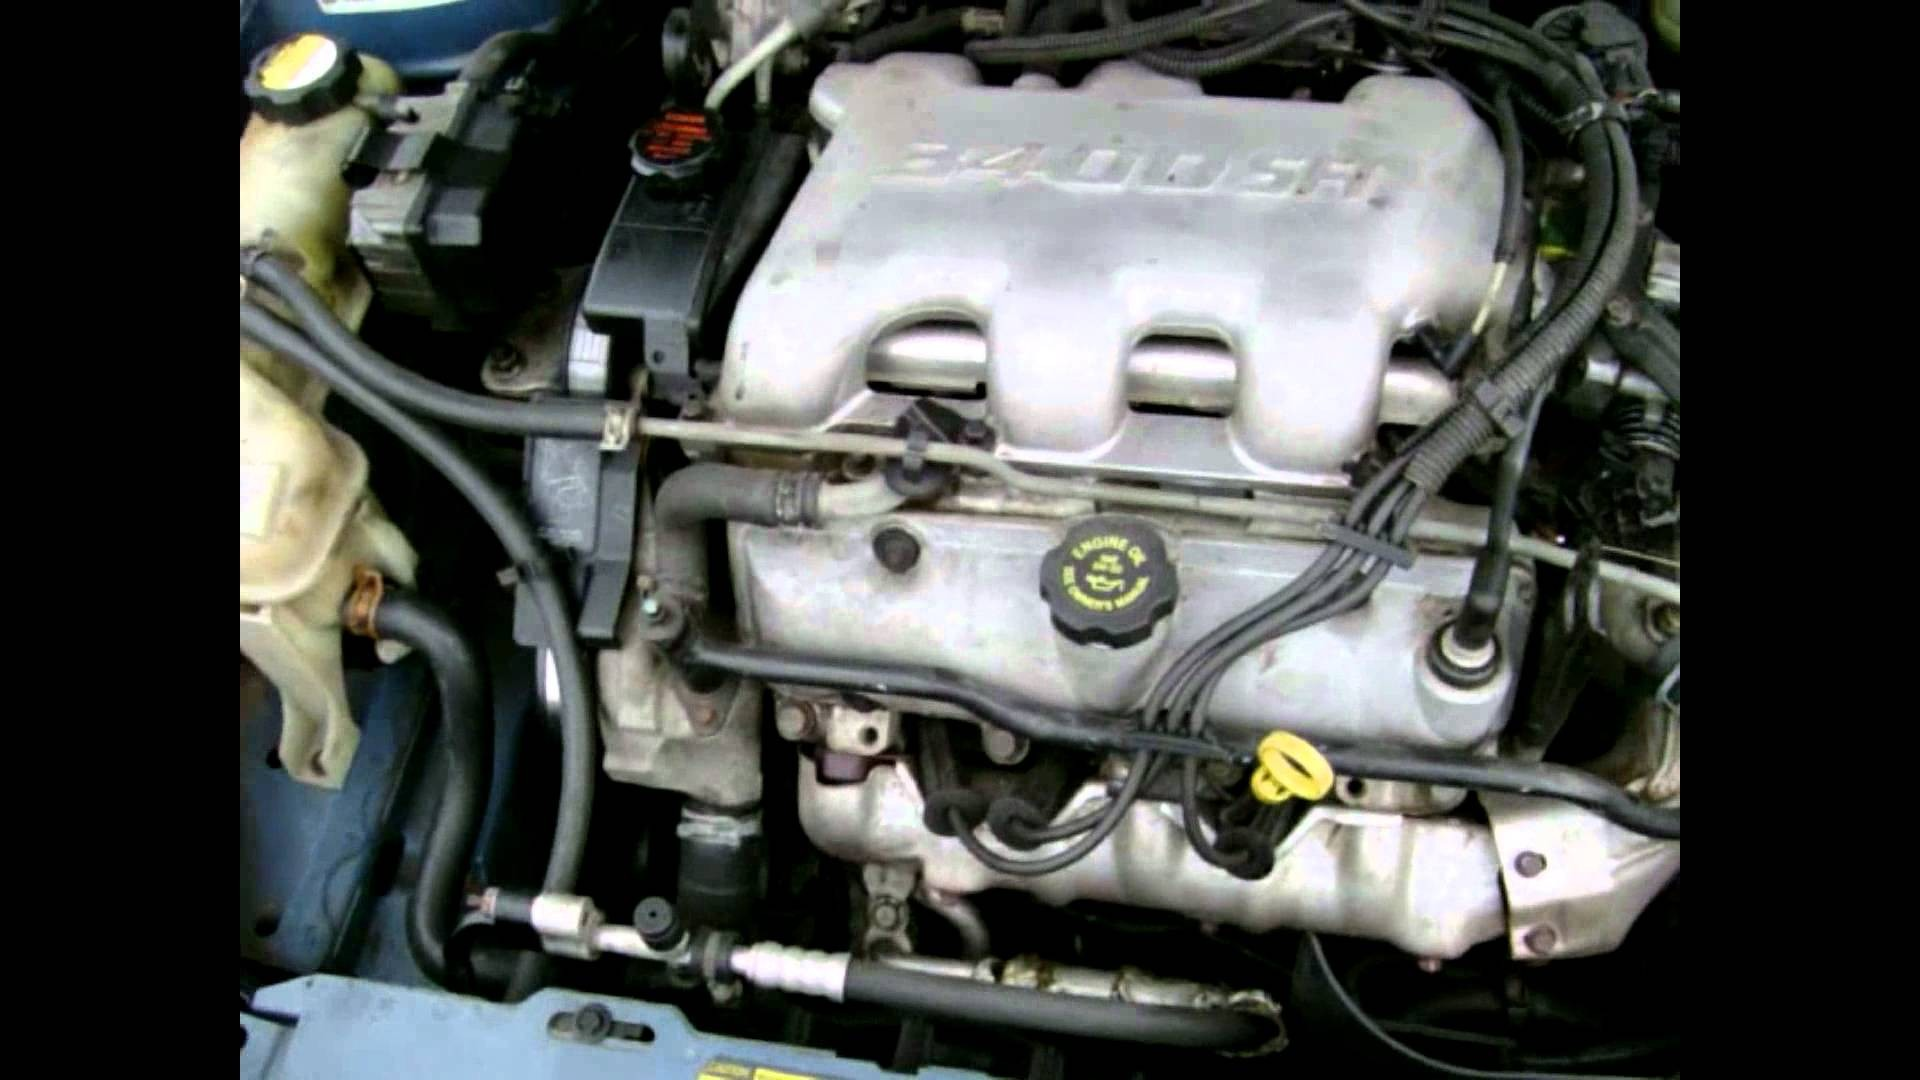 hight resolution of 2003 chevrolet wiring diagram monte carlo 3 4l wiring diagram rh friendsoffido co 2005 impala engine